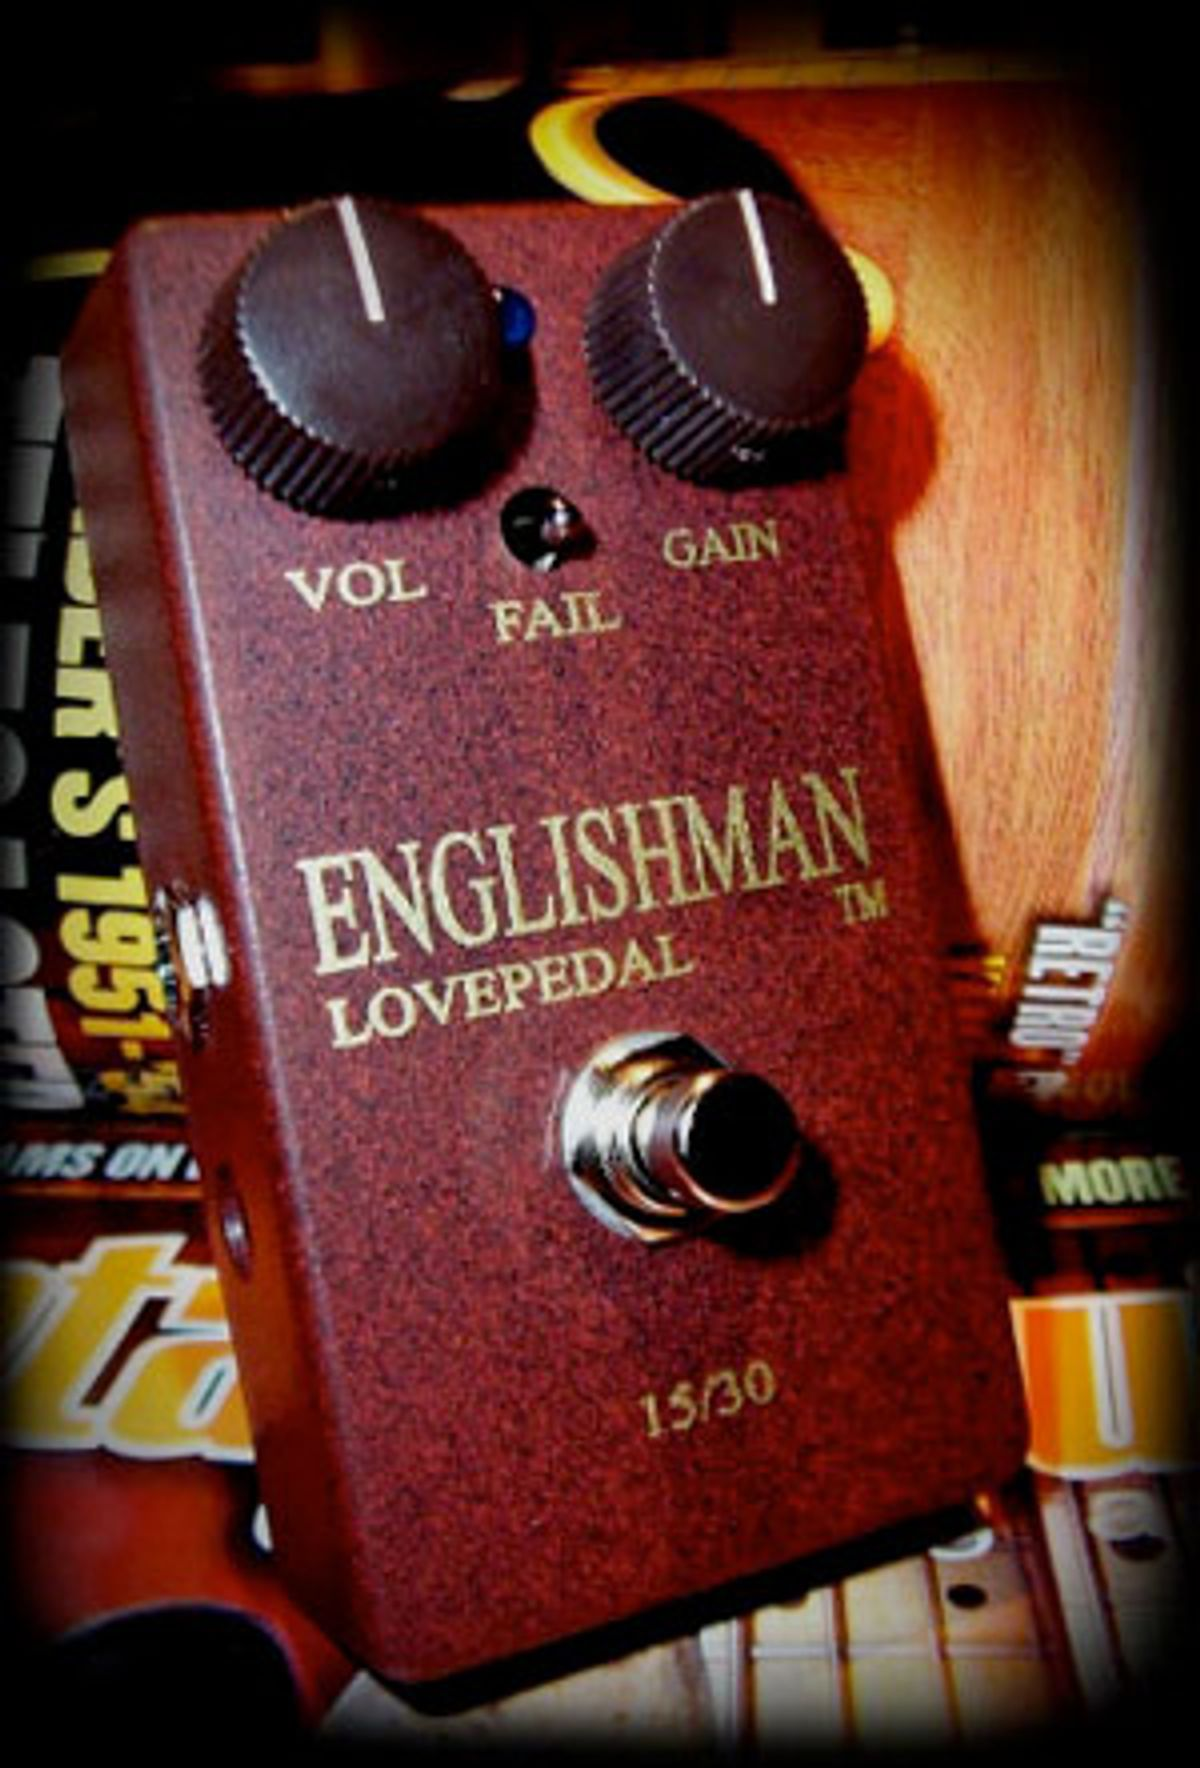 Lovepedal Releases Englishman